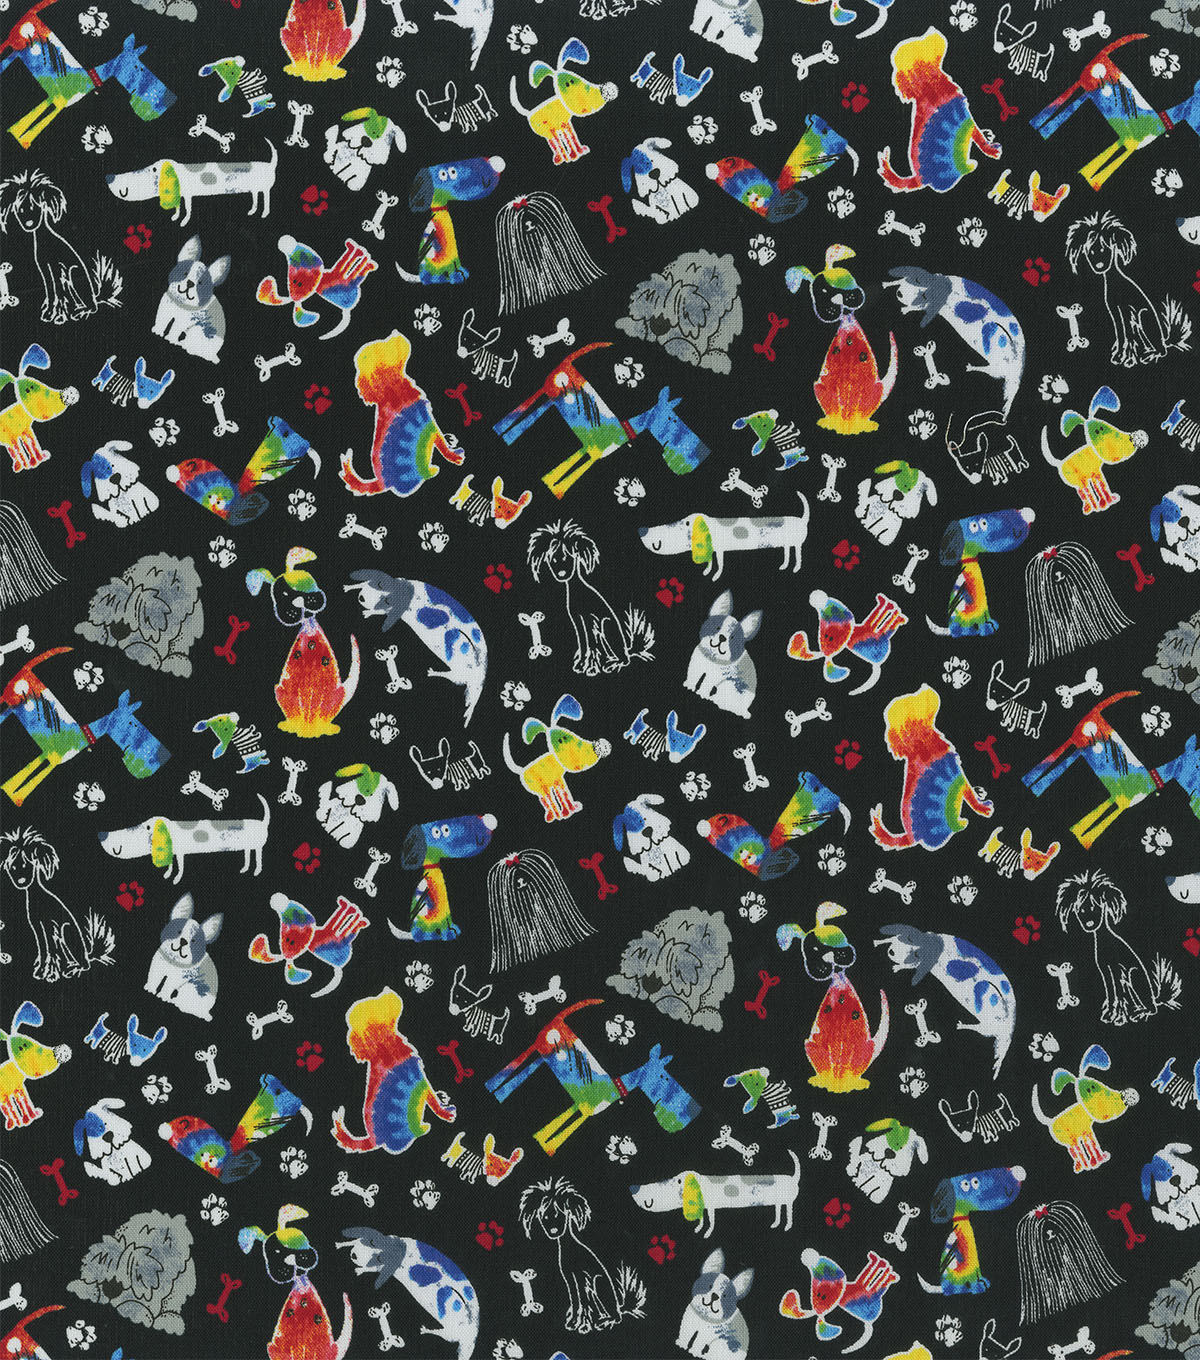 Novelty Cotton Fabric -Tie Dye Pups On Black